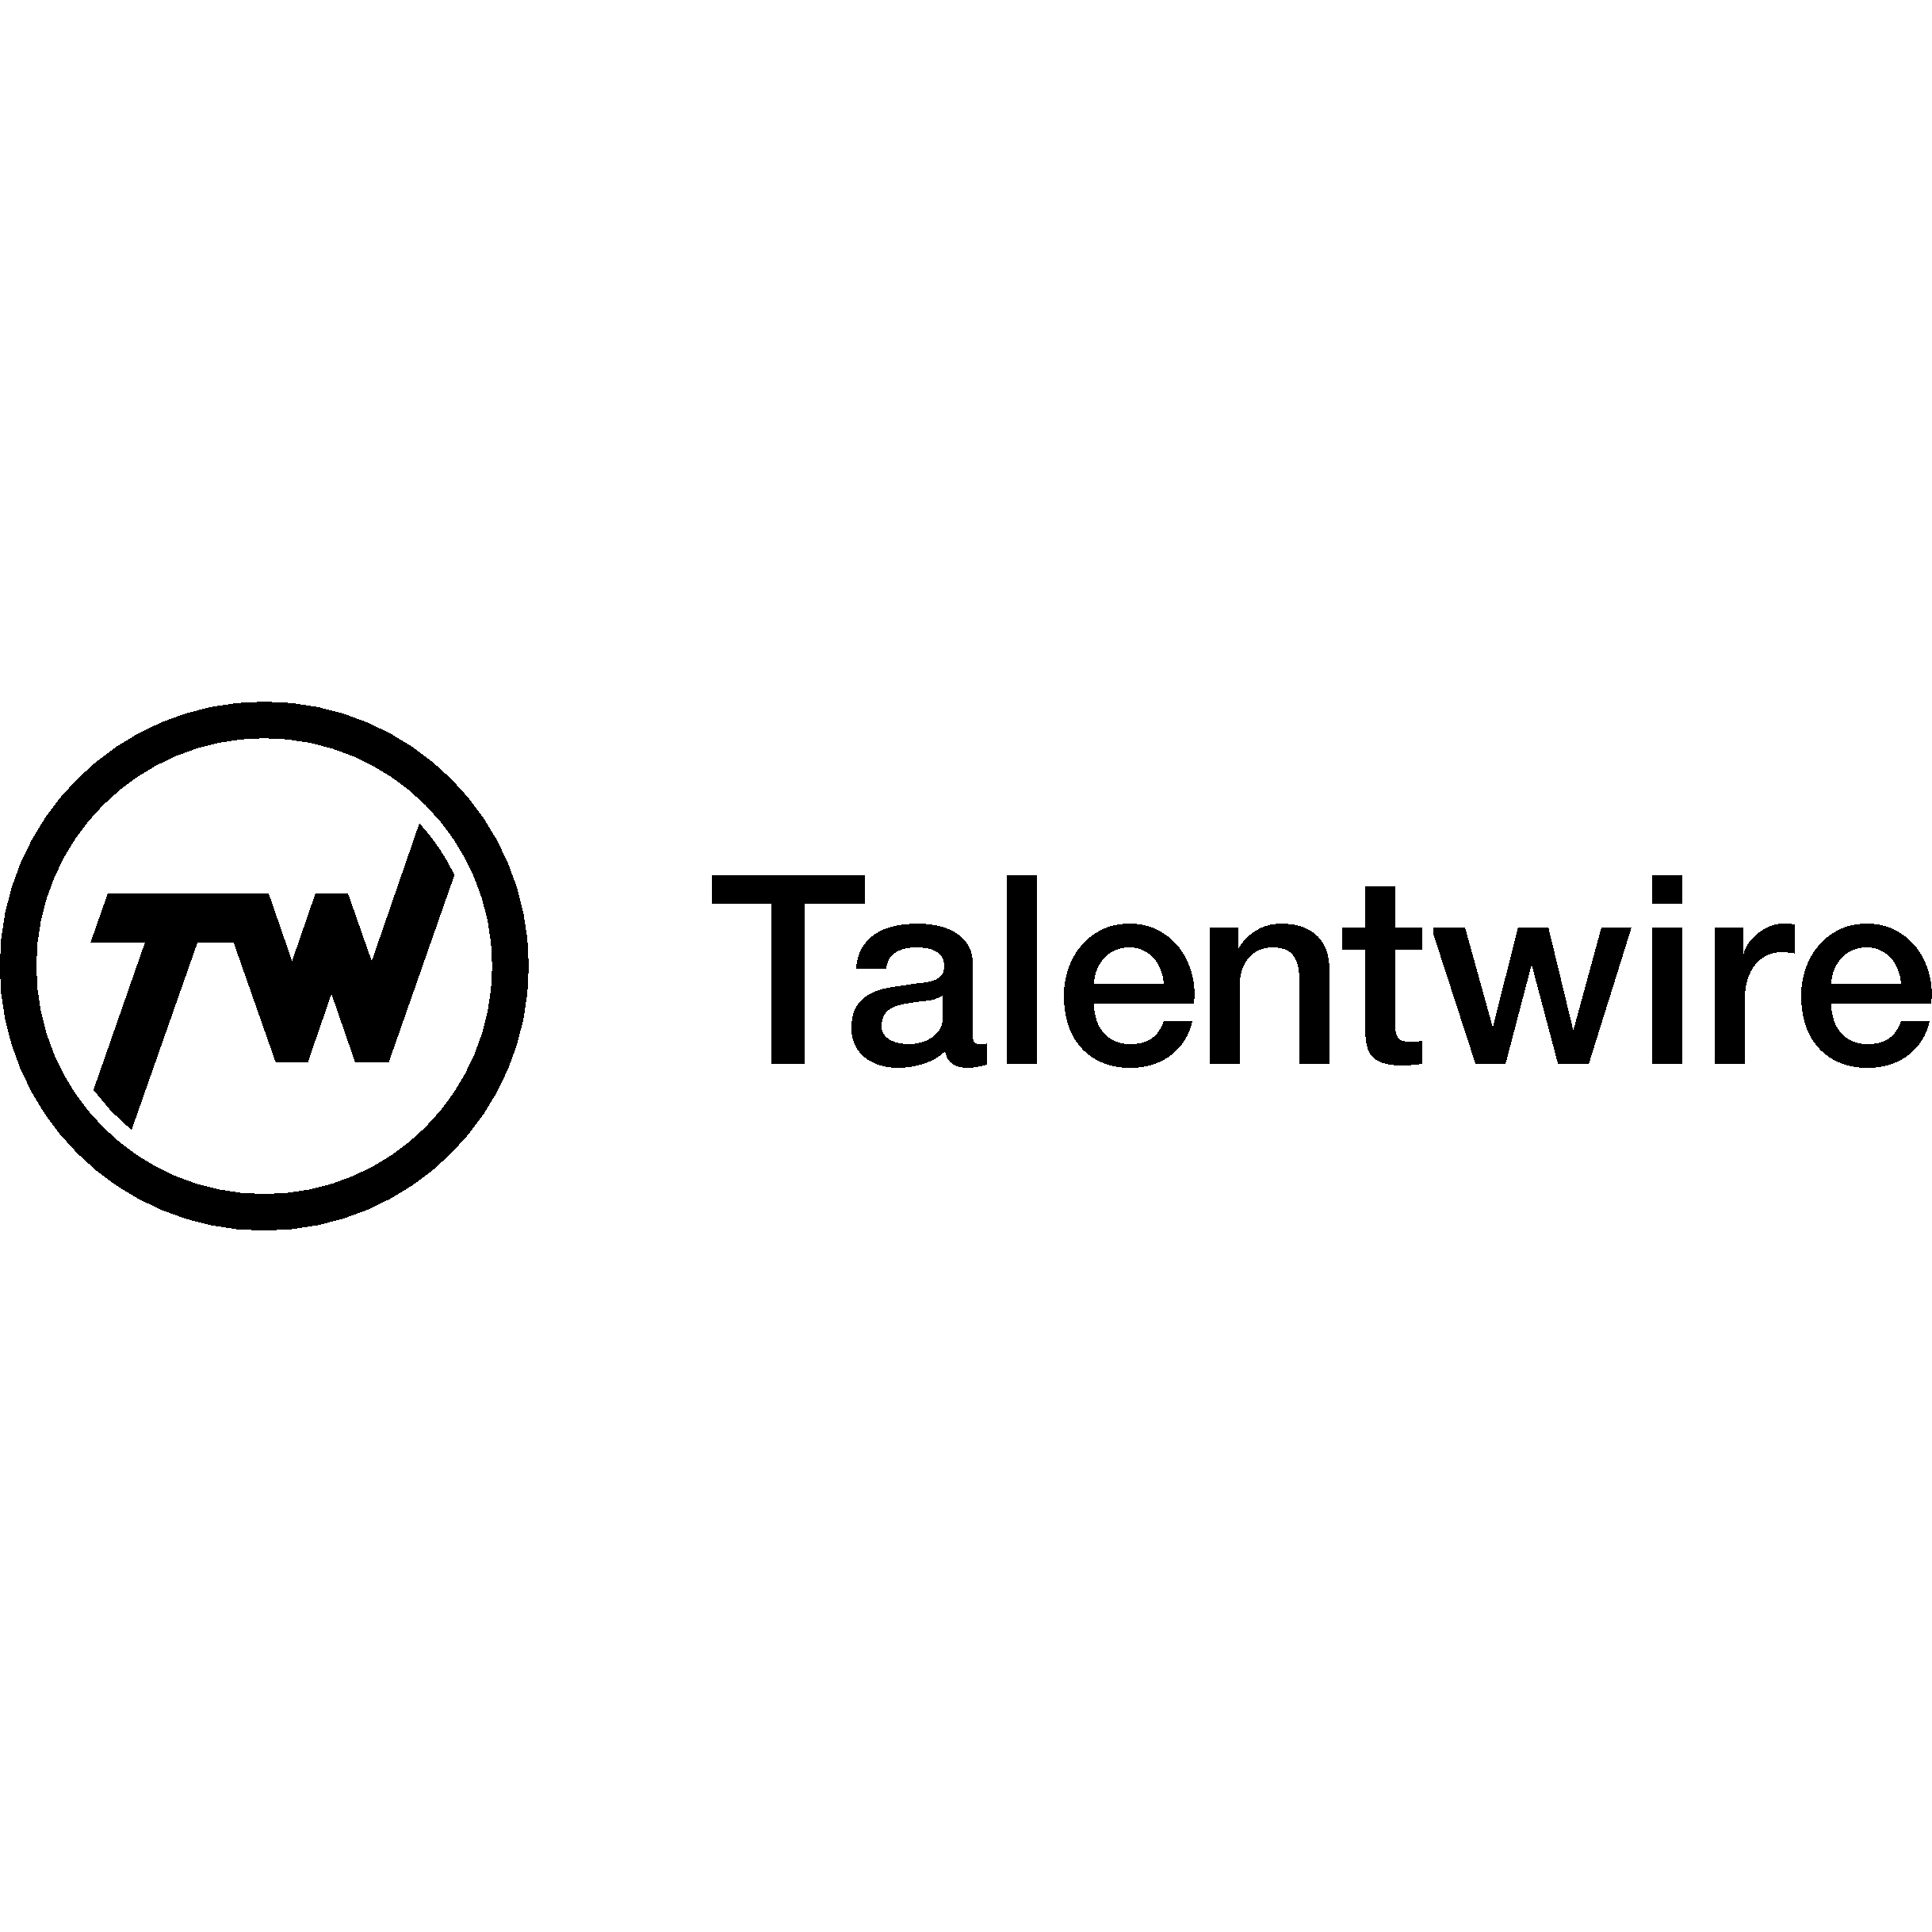 tw_logo.png